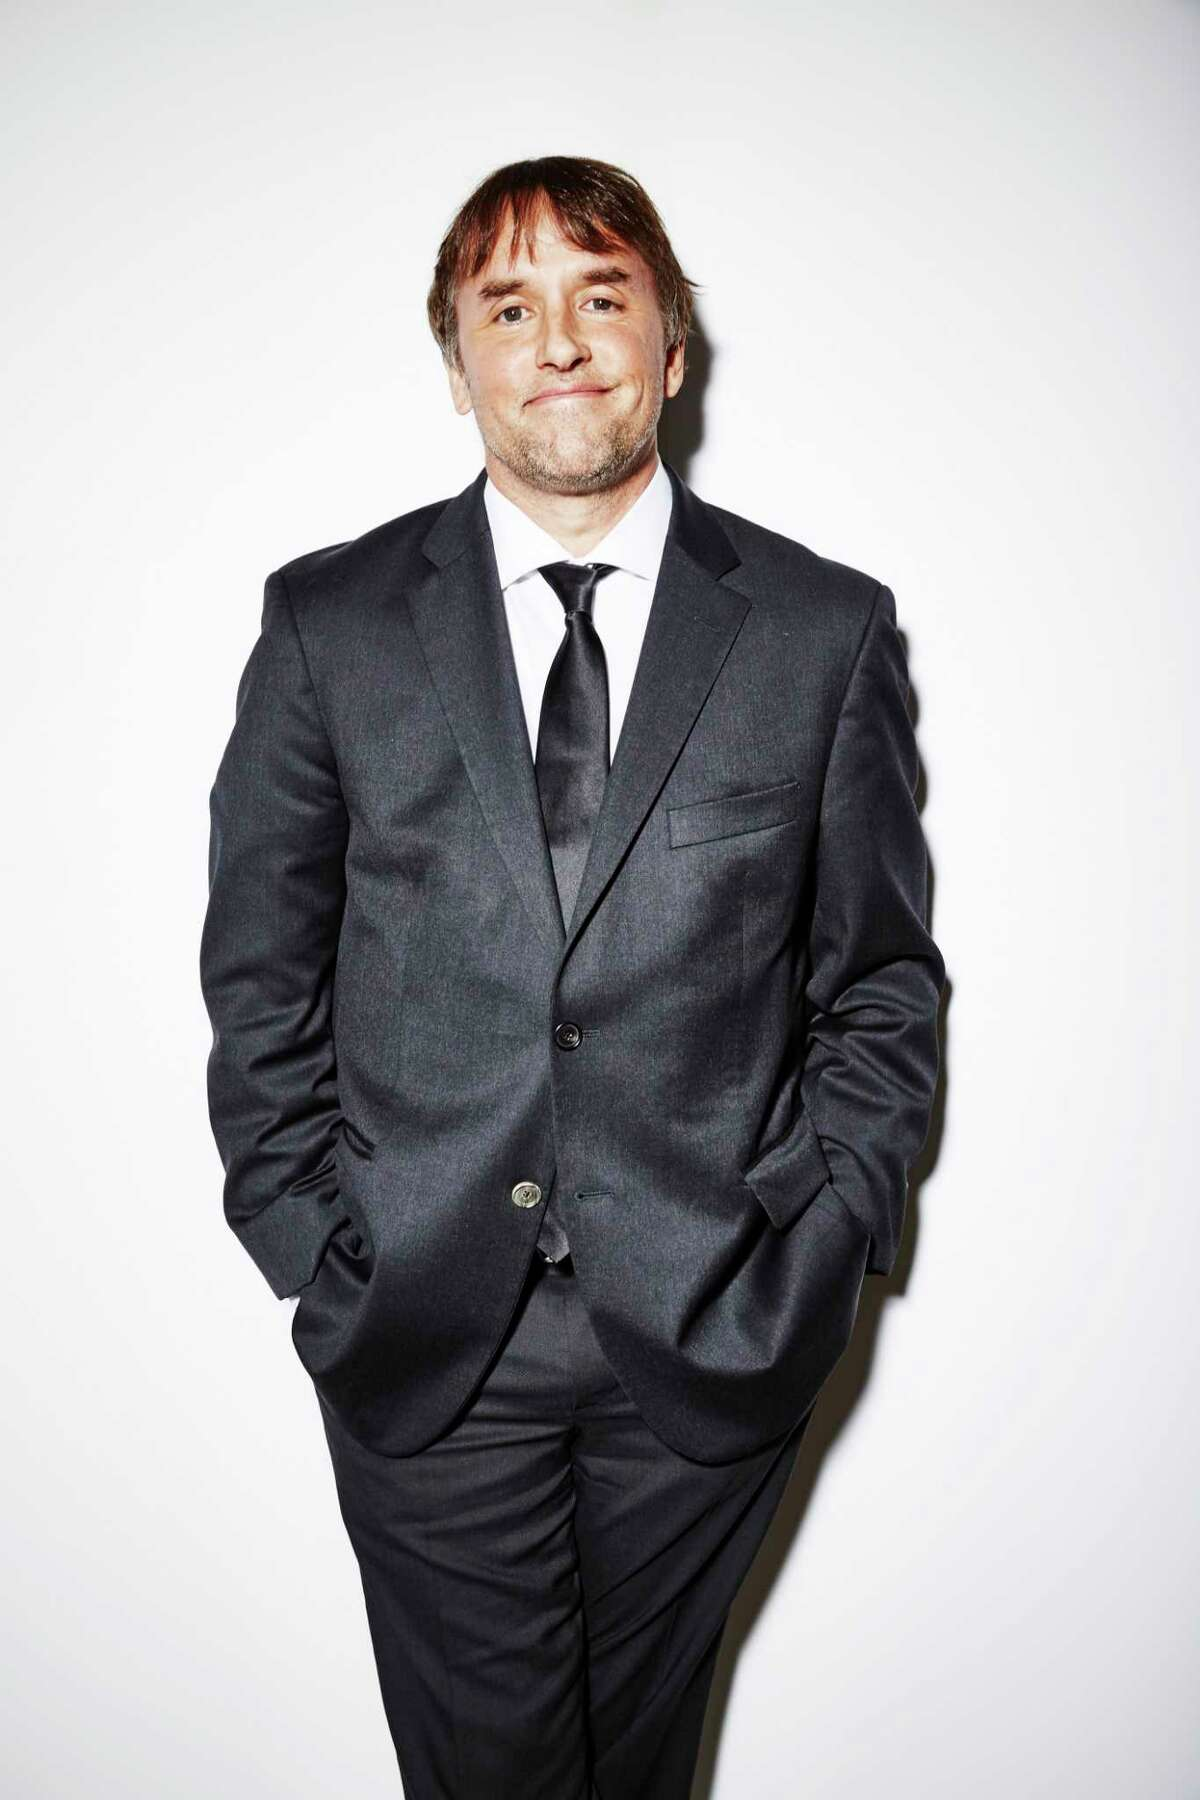 Director Richard Linklater poses for a portrait at the 17th Costume Designers Guild Awards on February 24, 2015 in Beverly Hills, California.